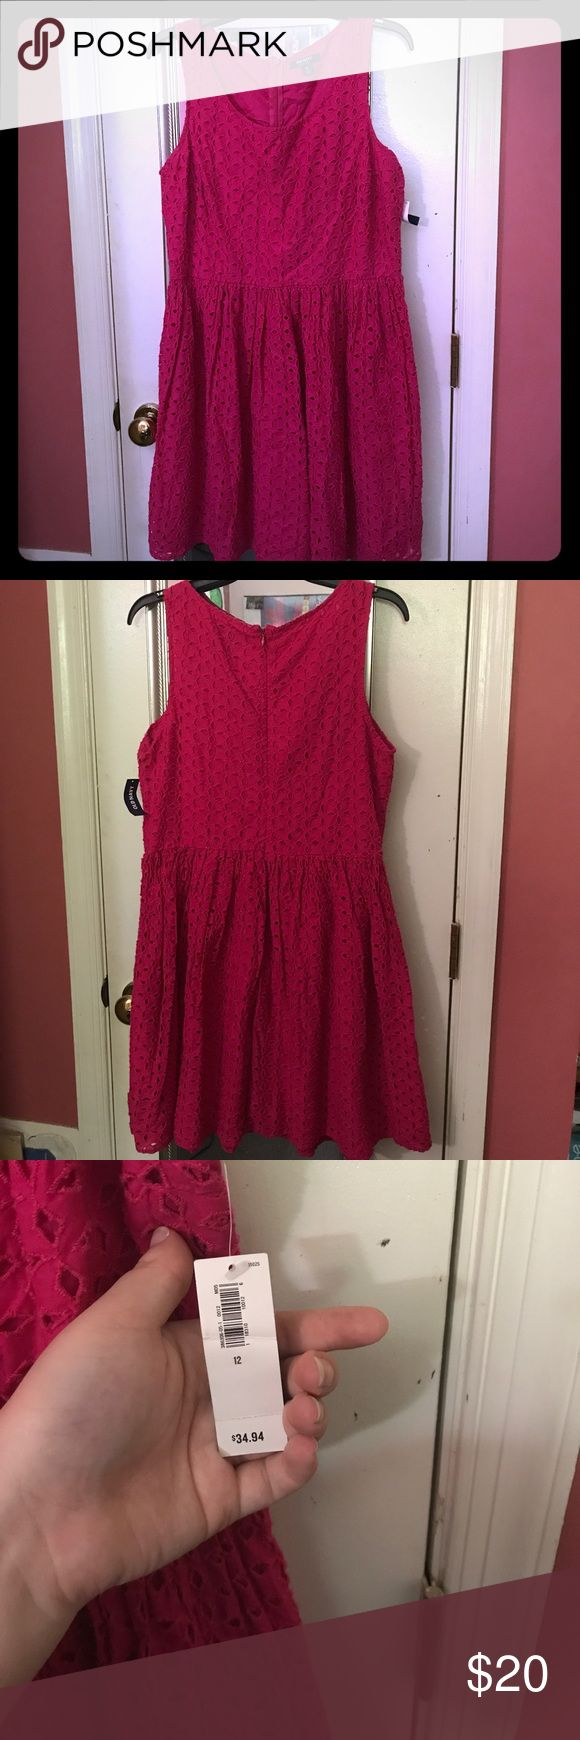 NWT hot pink old navy cocktail dress Lightweight and cute dress. Length comes to about the knee. Perfect for a night out or a casual date. Old Navy Dresses